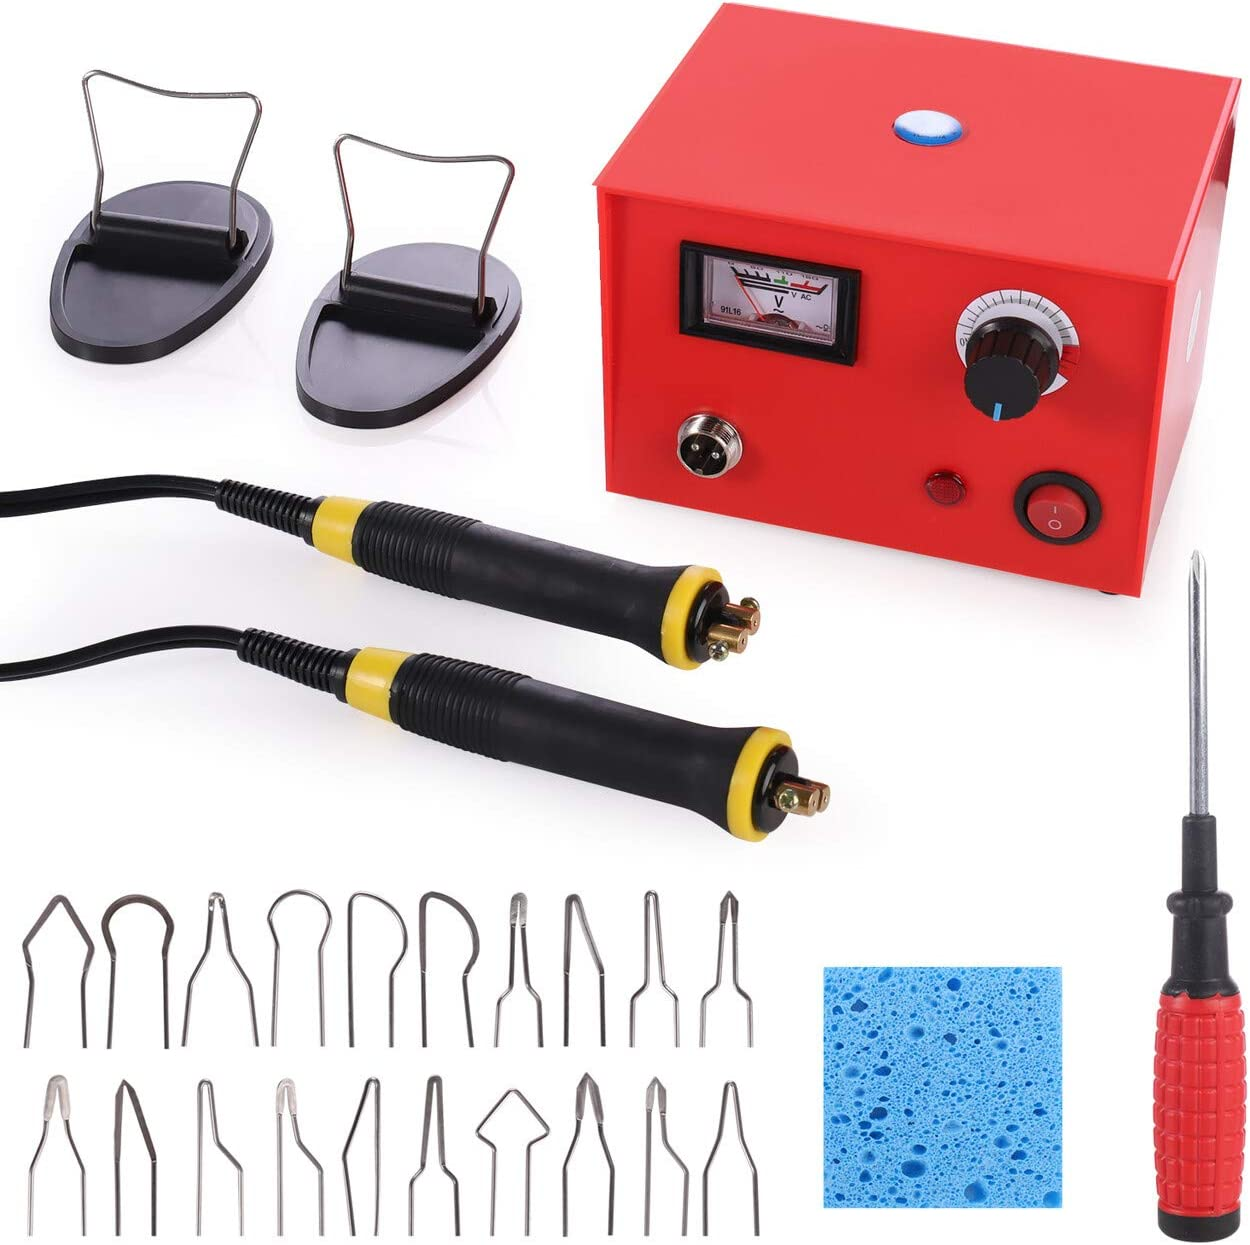 220V 25W Crafts Gourd Wood Multifunction Pyrography Machine Heating Kit Tool